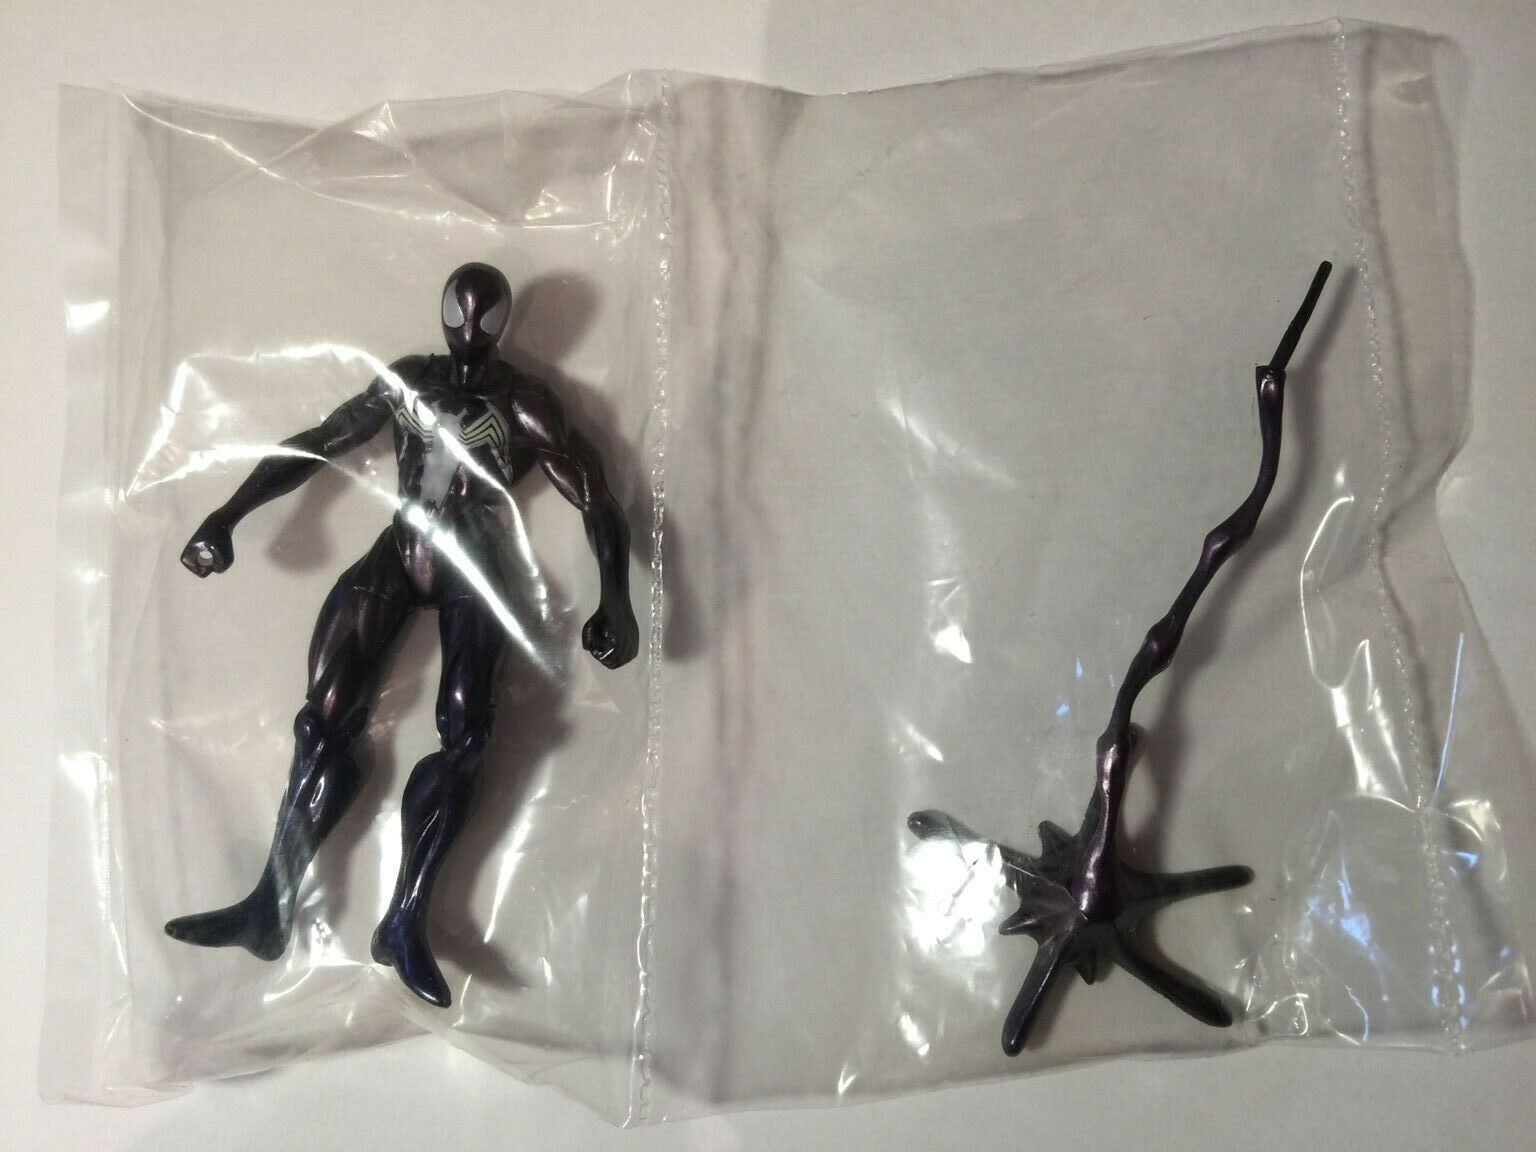 Ultimate Spider-Man Action Action Action Vignette Figures b631c7